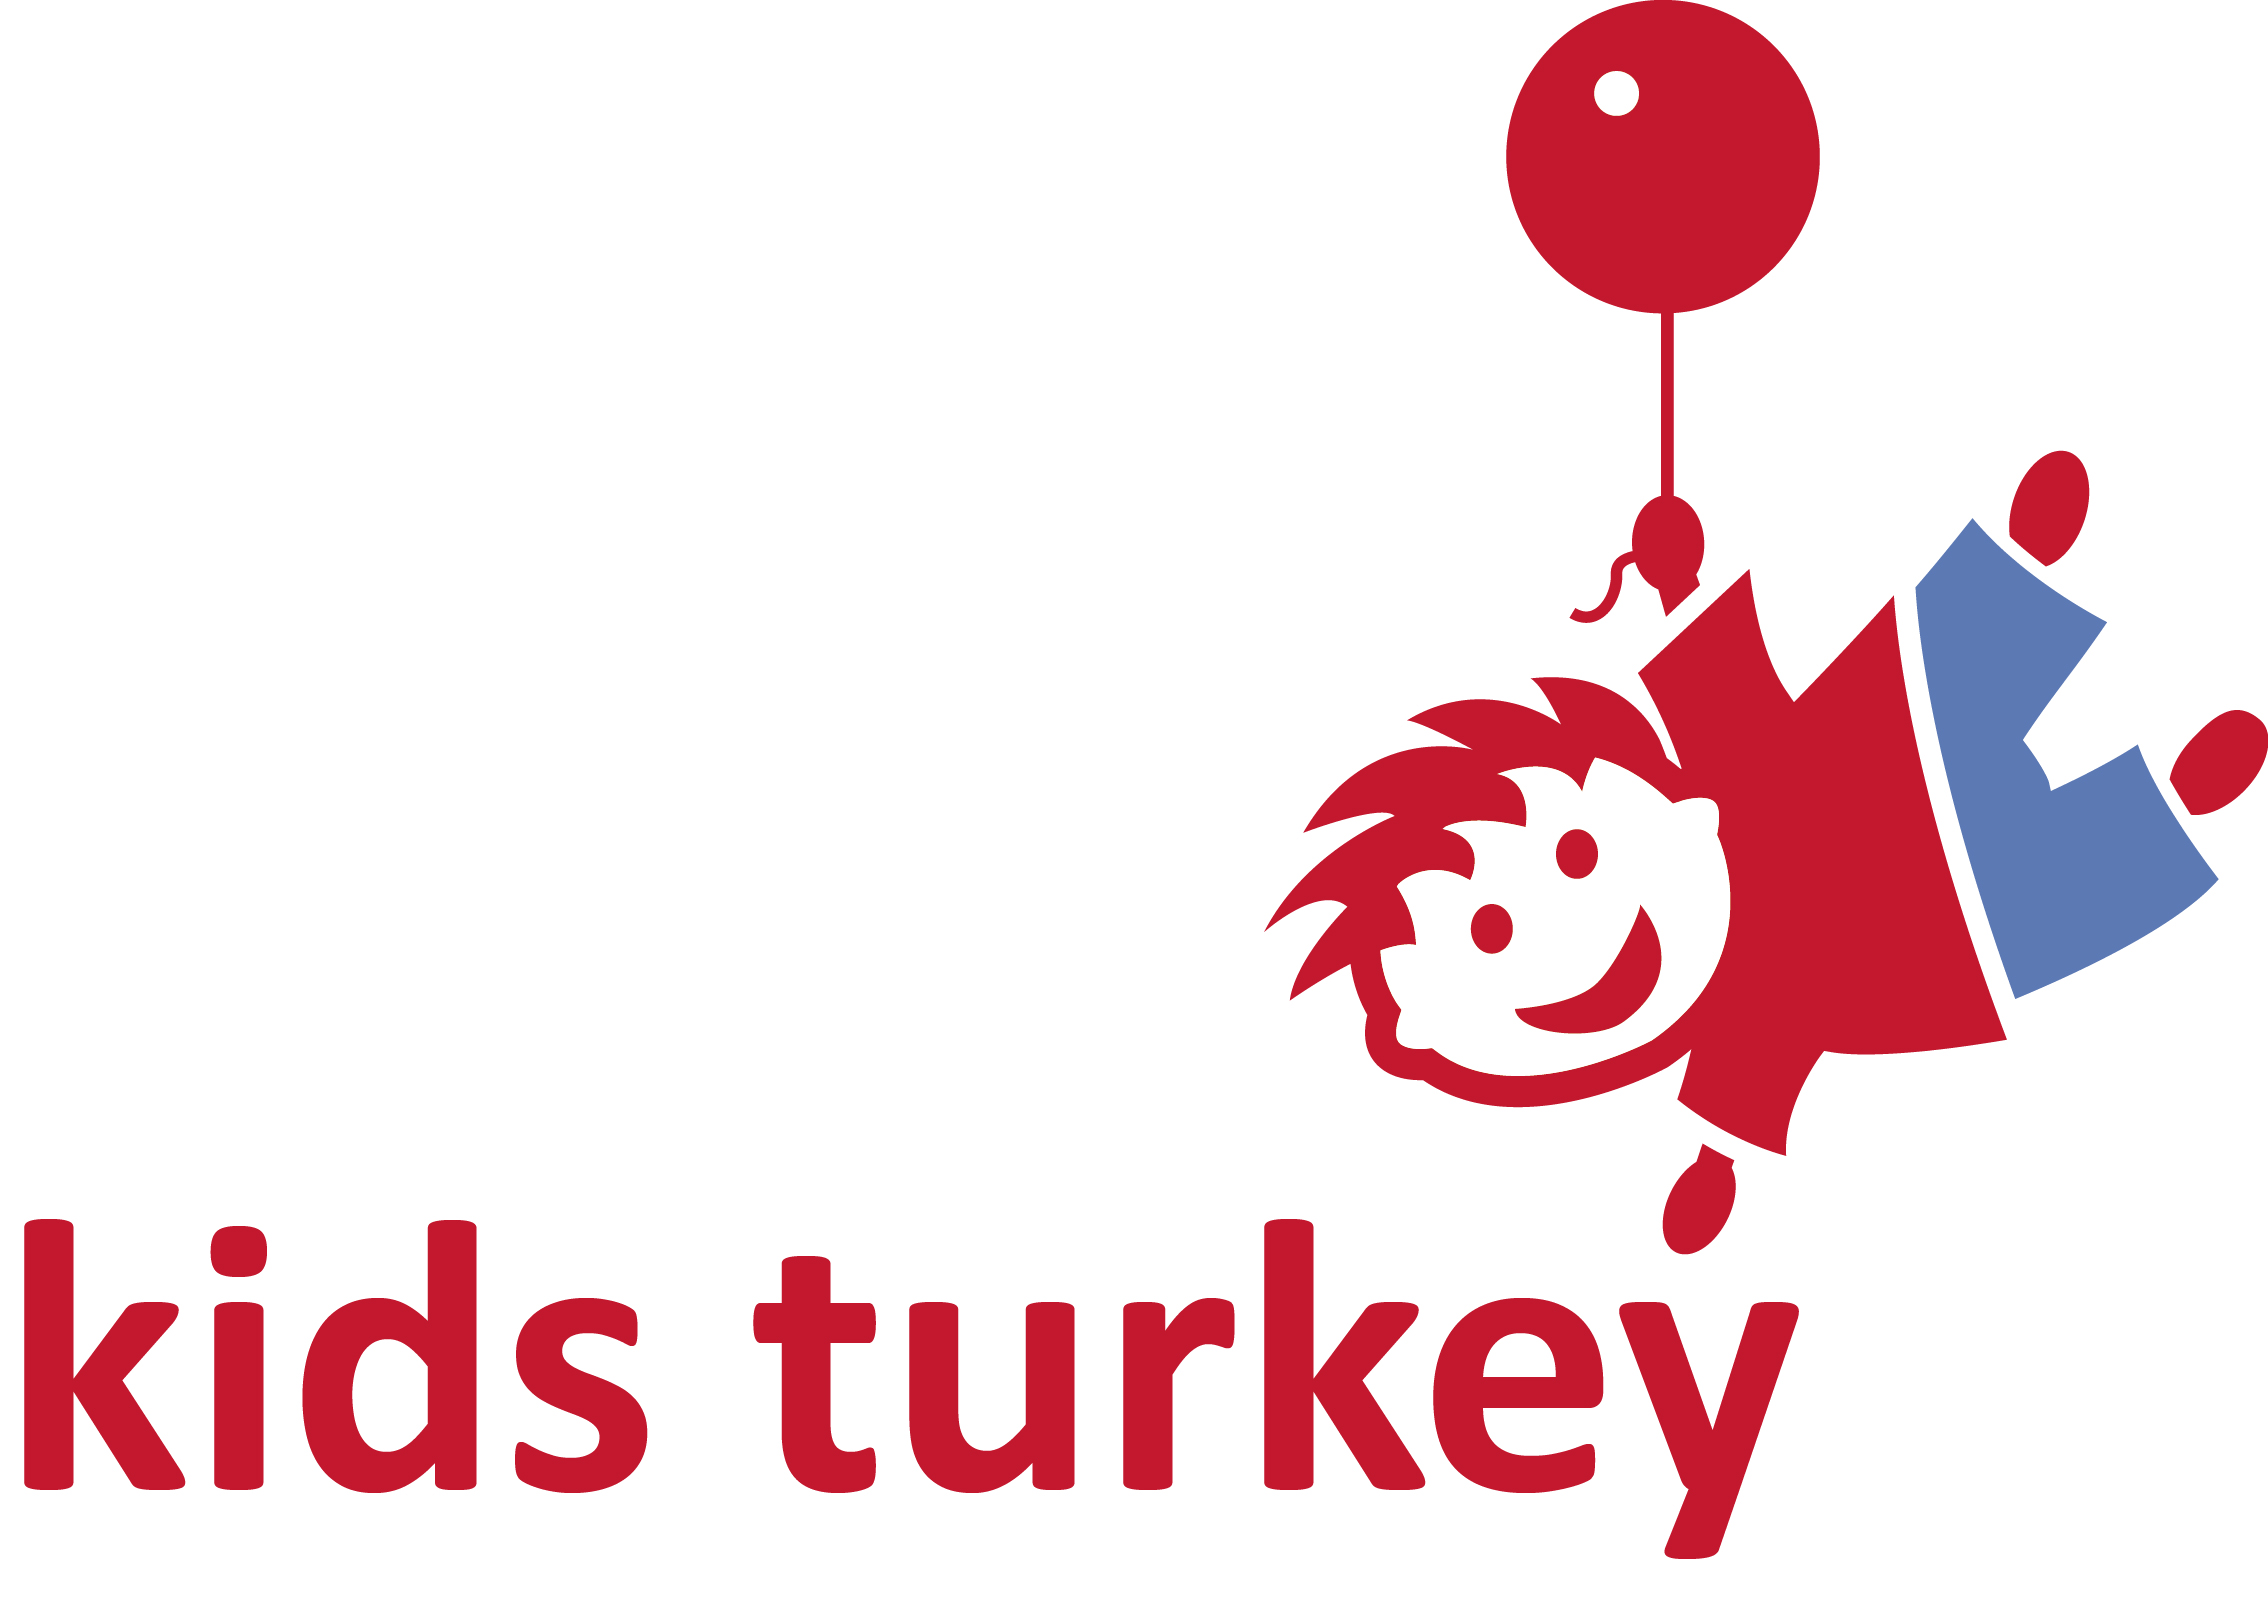 KIDS TURKEY